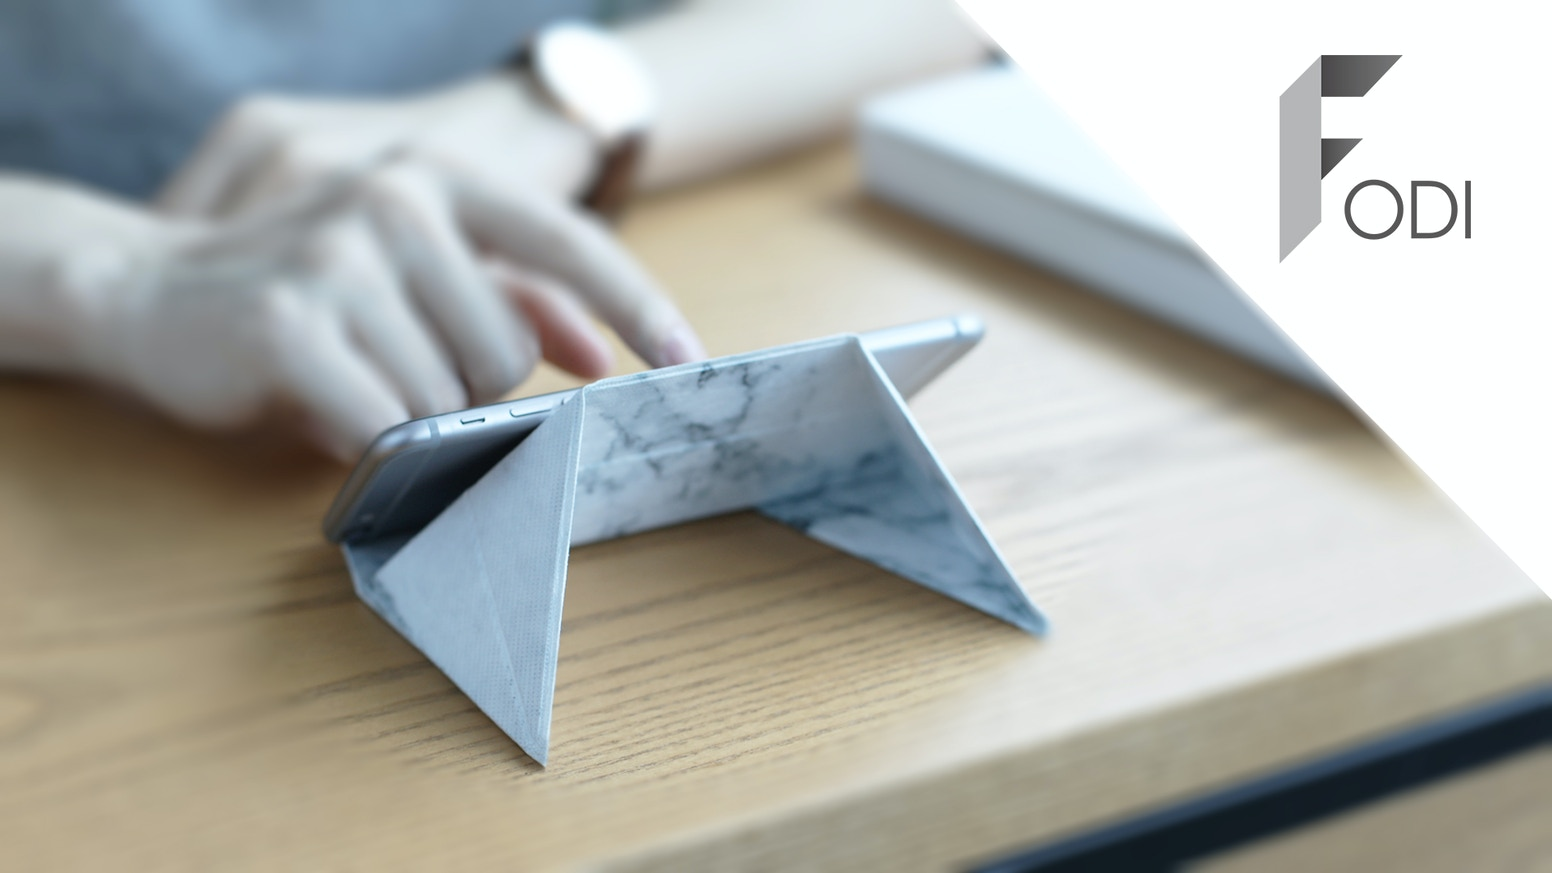 FODI is an Origami stand that folds to different sizes to fit your mobile devices, laptops and much more.